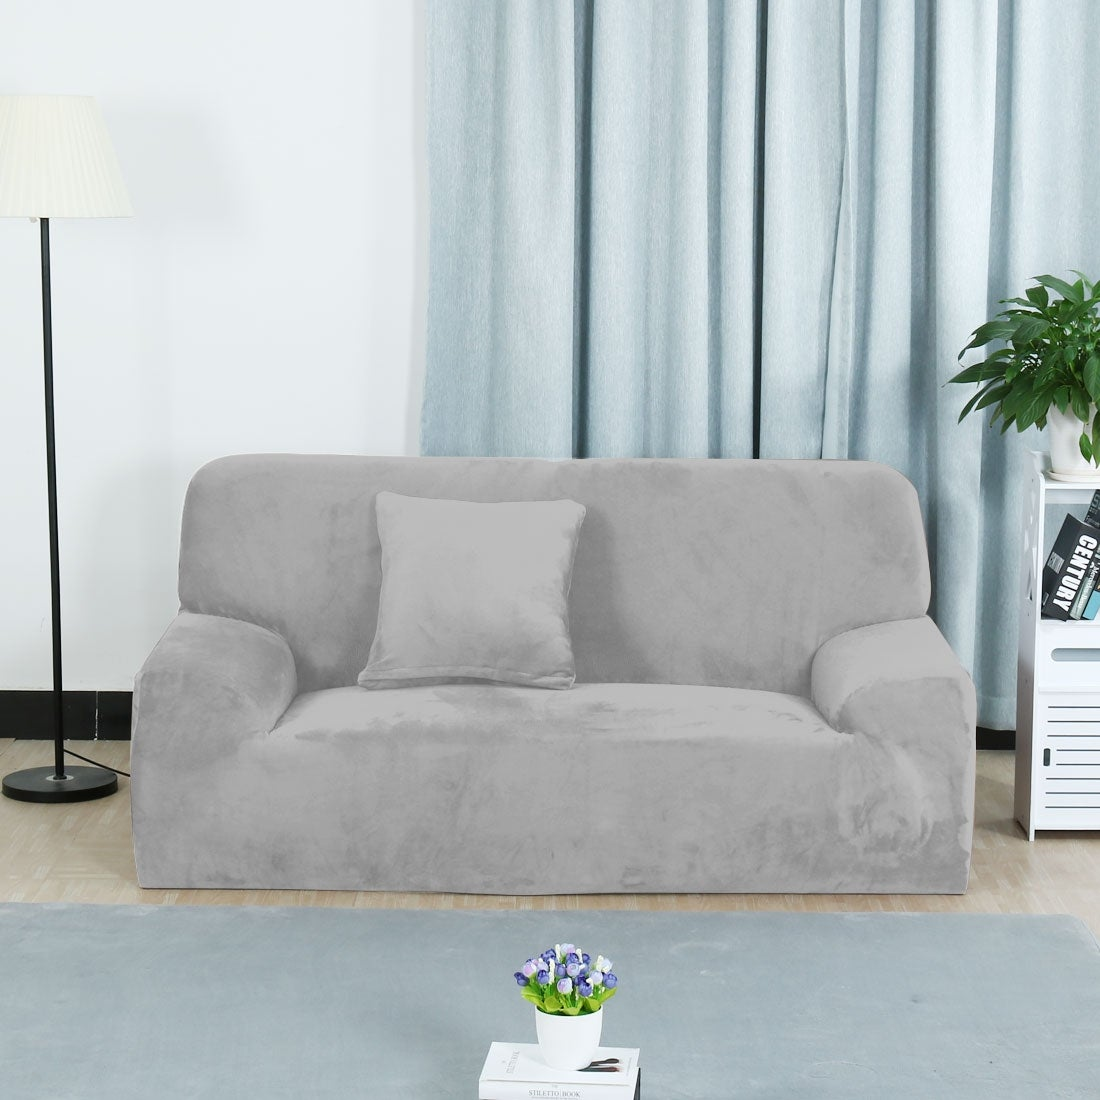 Flannel Stretch Fabric Sofa Slipcovers